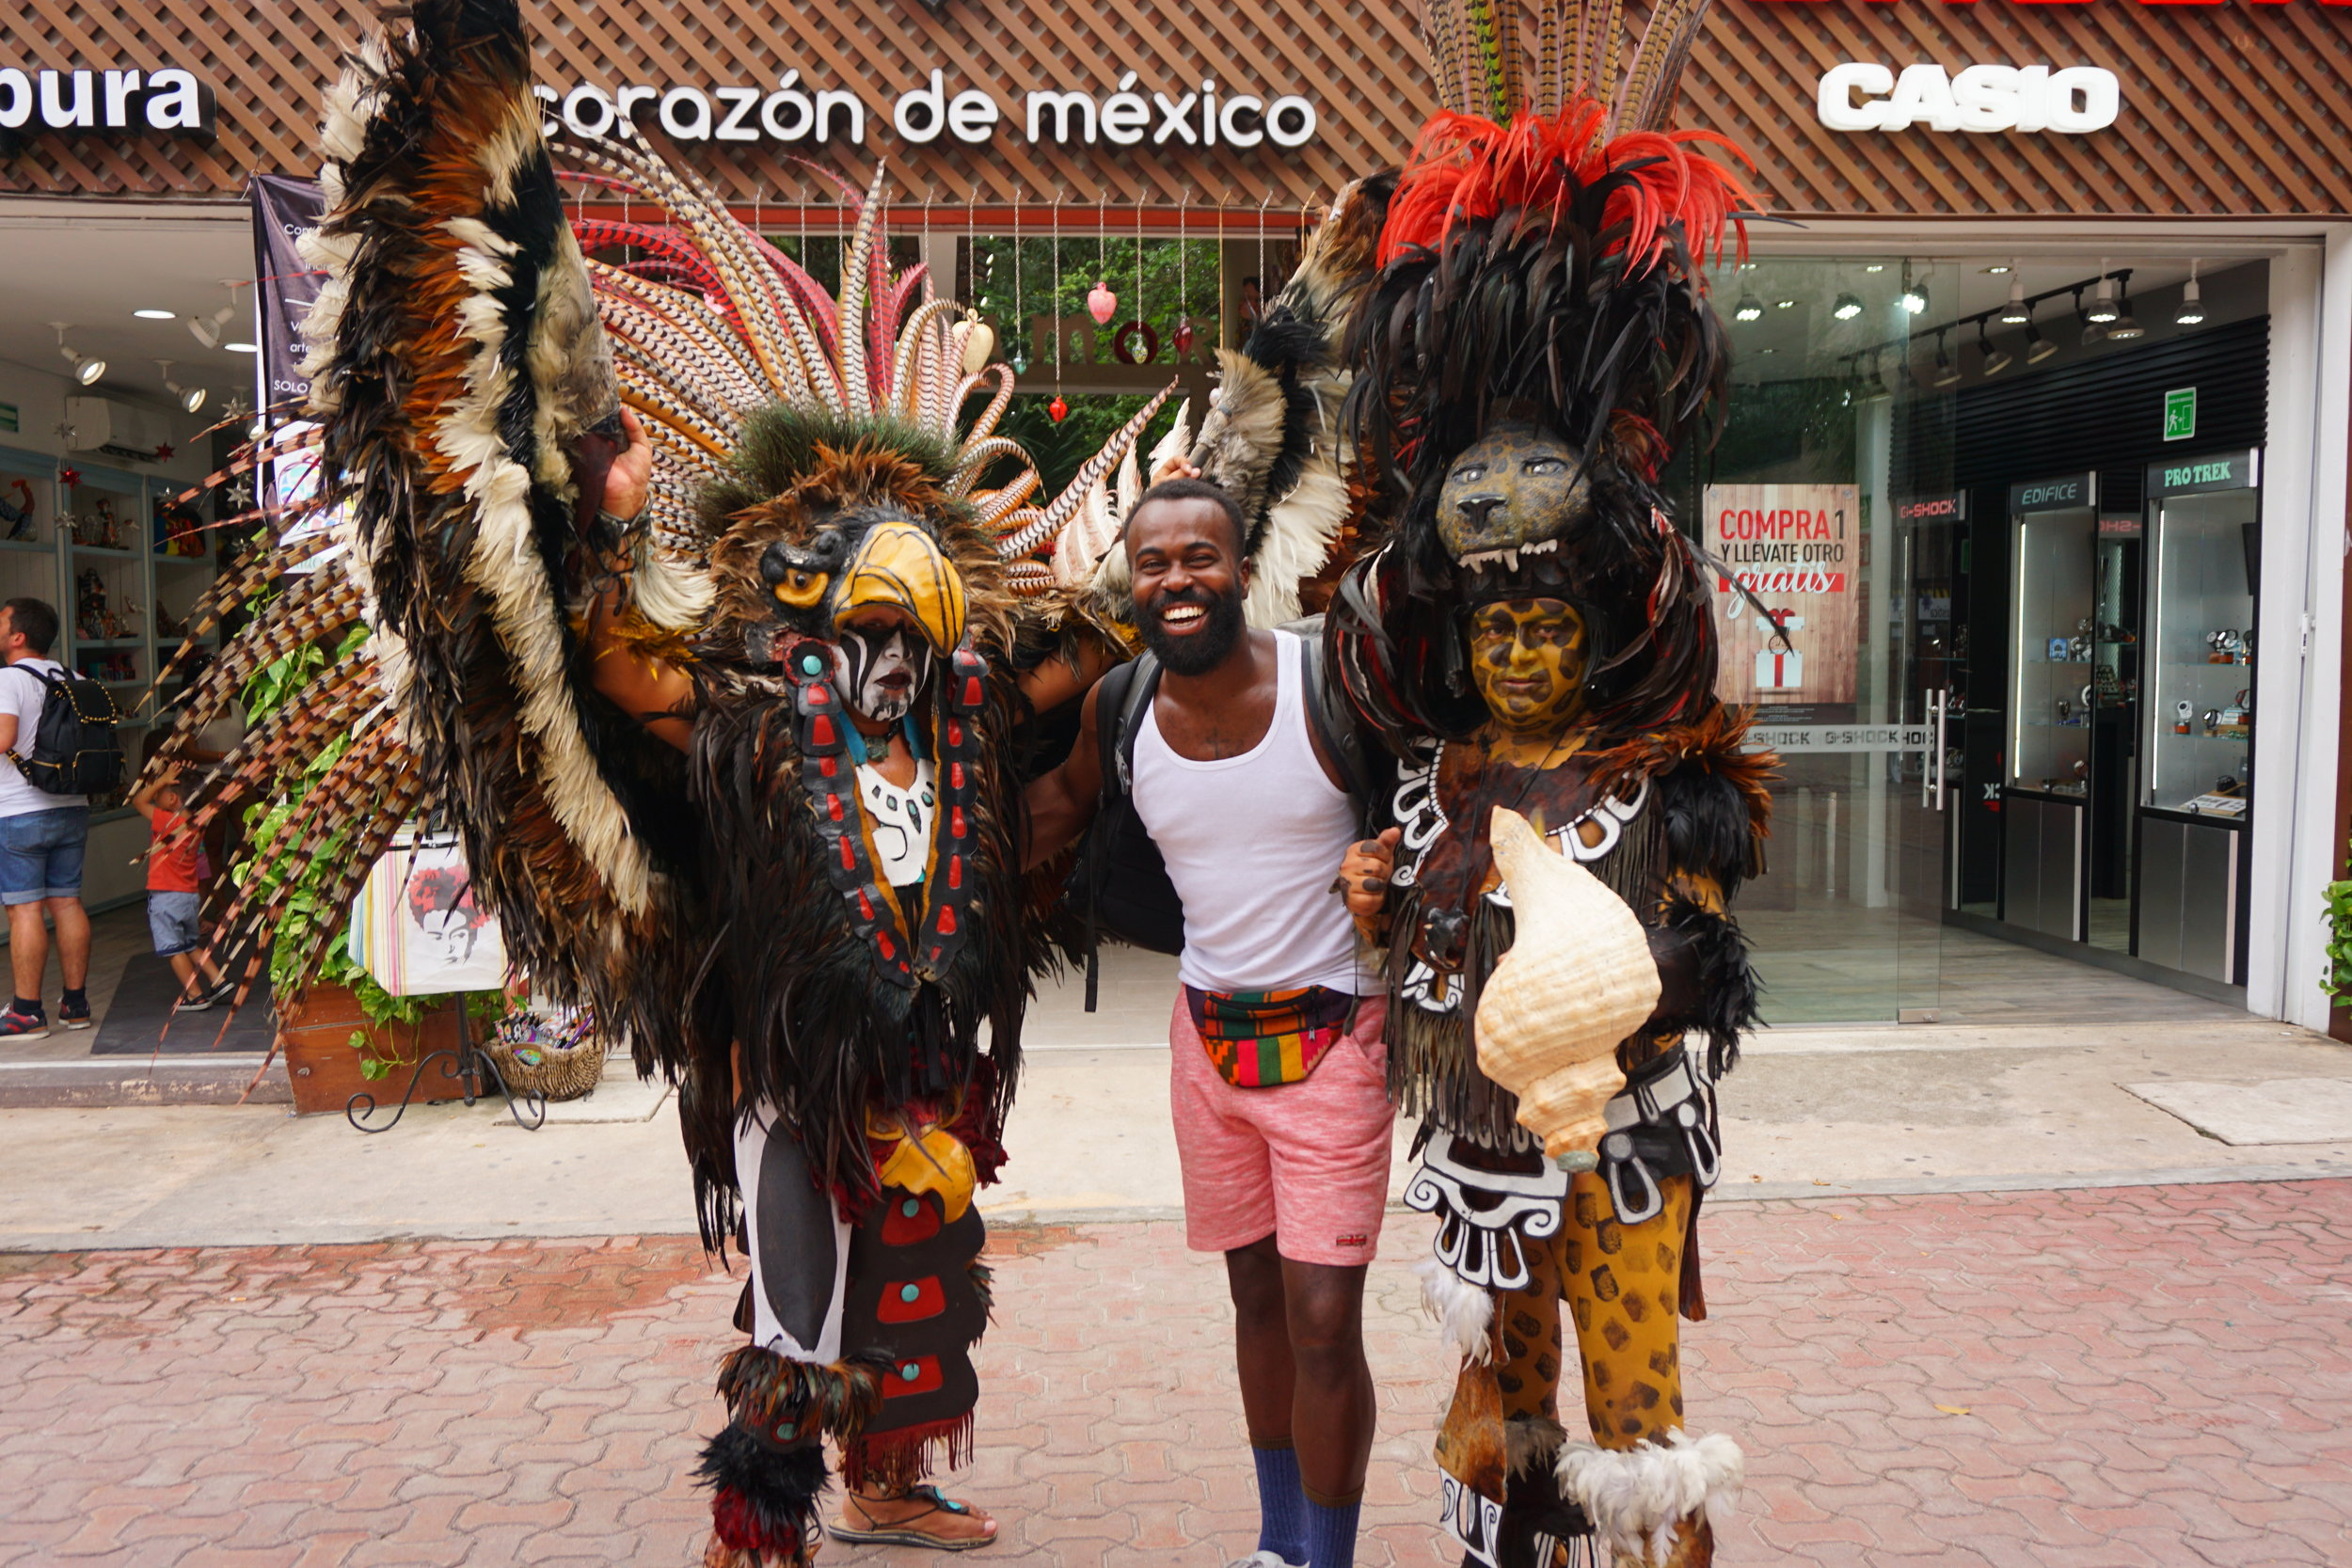 Locals dressed in Mayan ritual attire will take a picture with you on 5th Avenue.